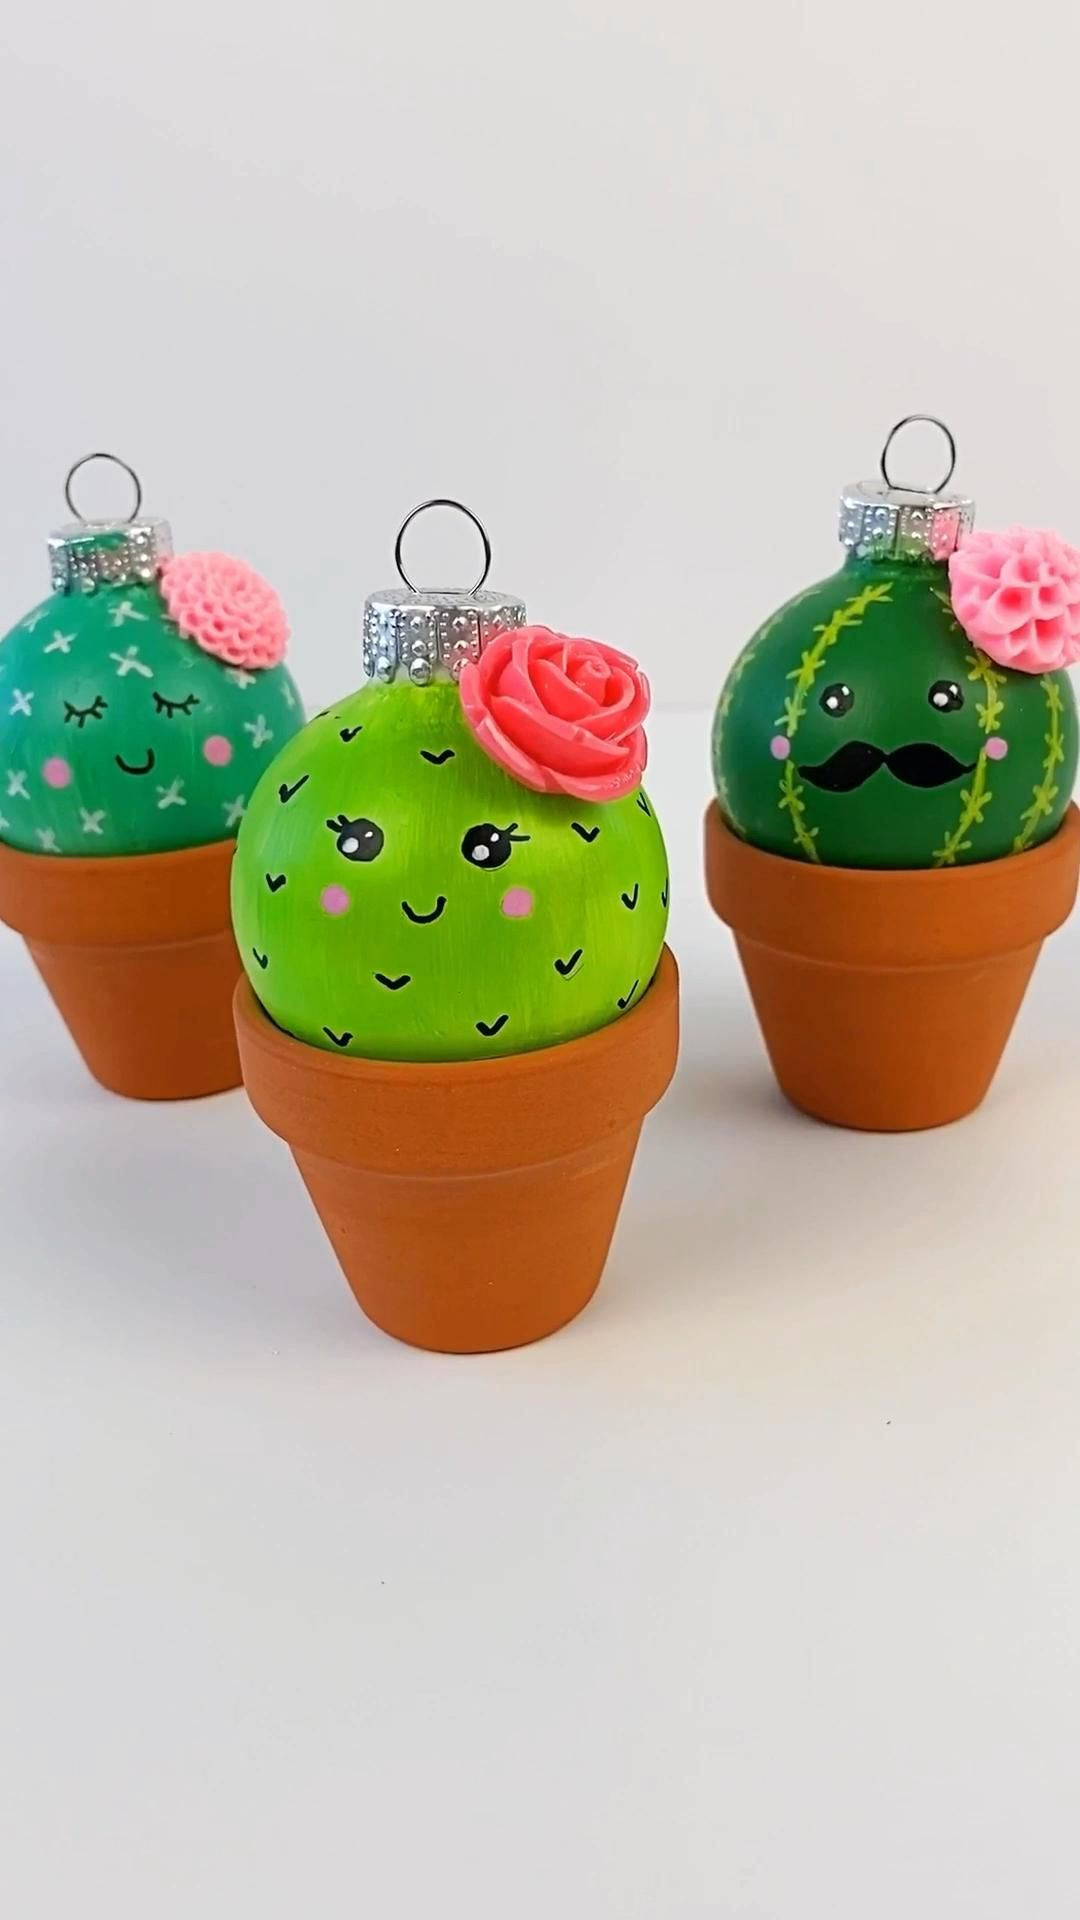 Photo of Cactus Ornament Craft for Christmas • Color Made Happy